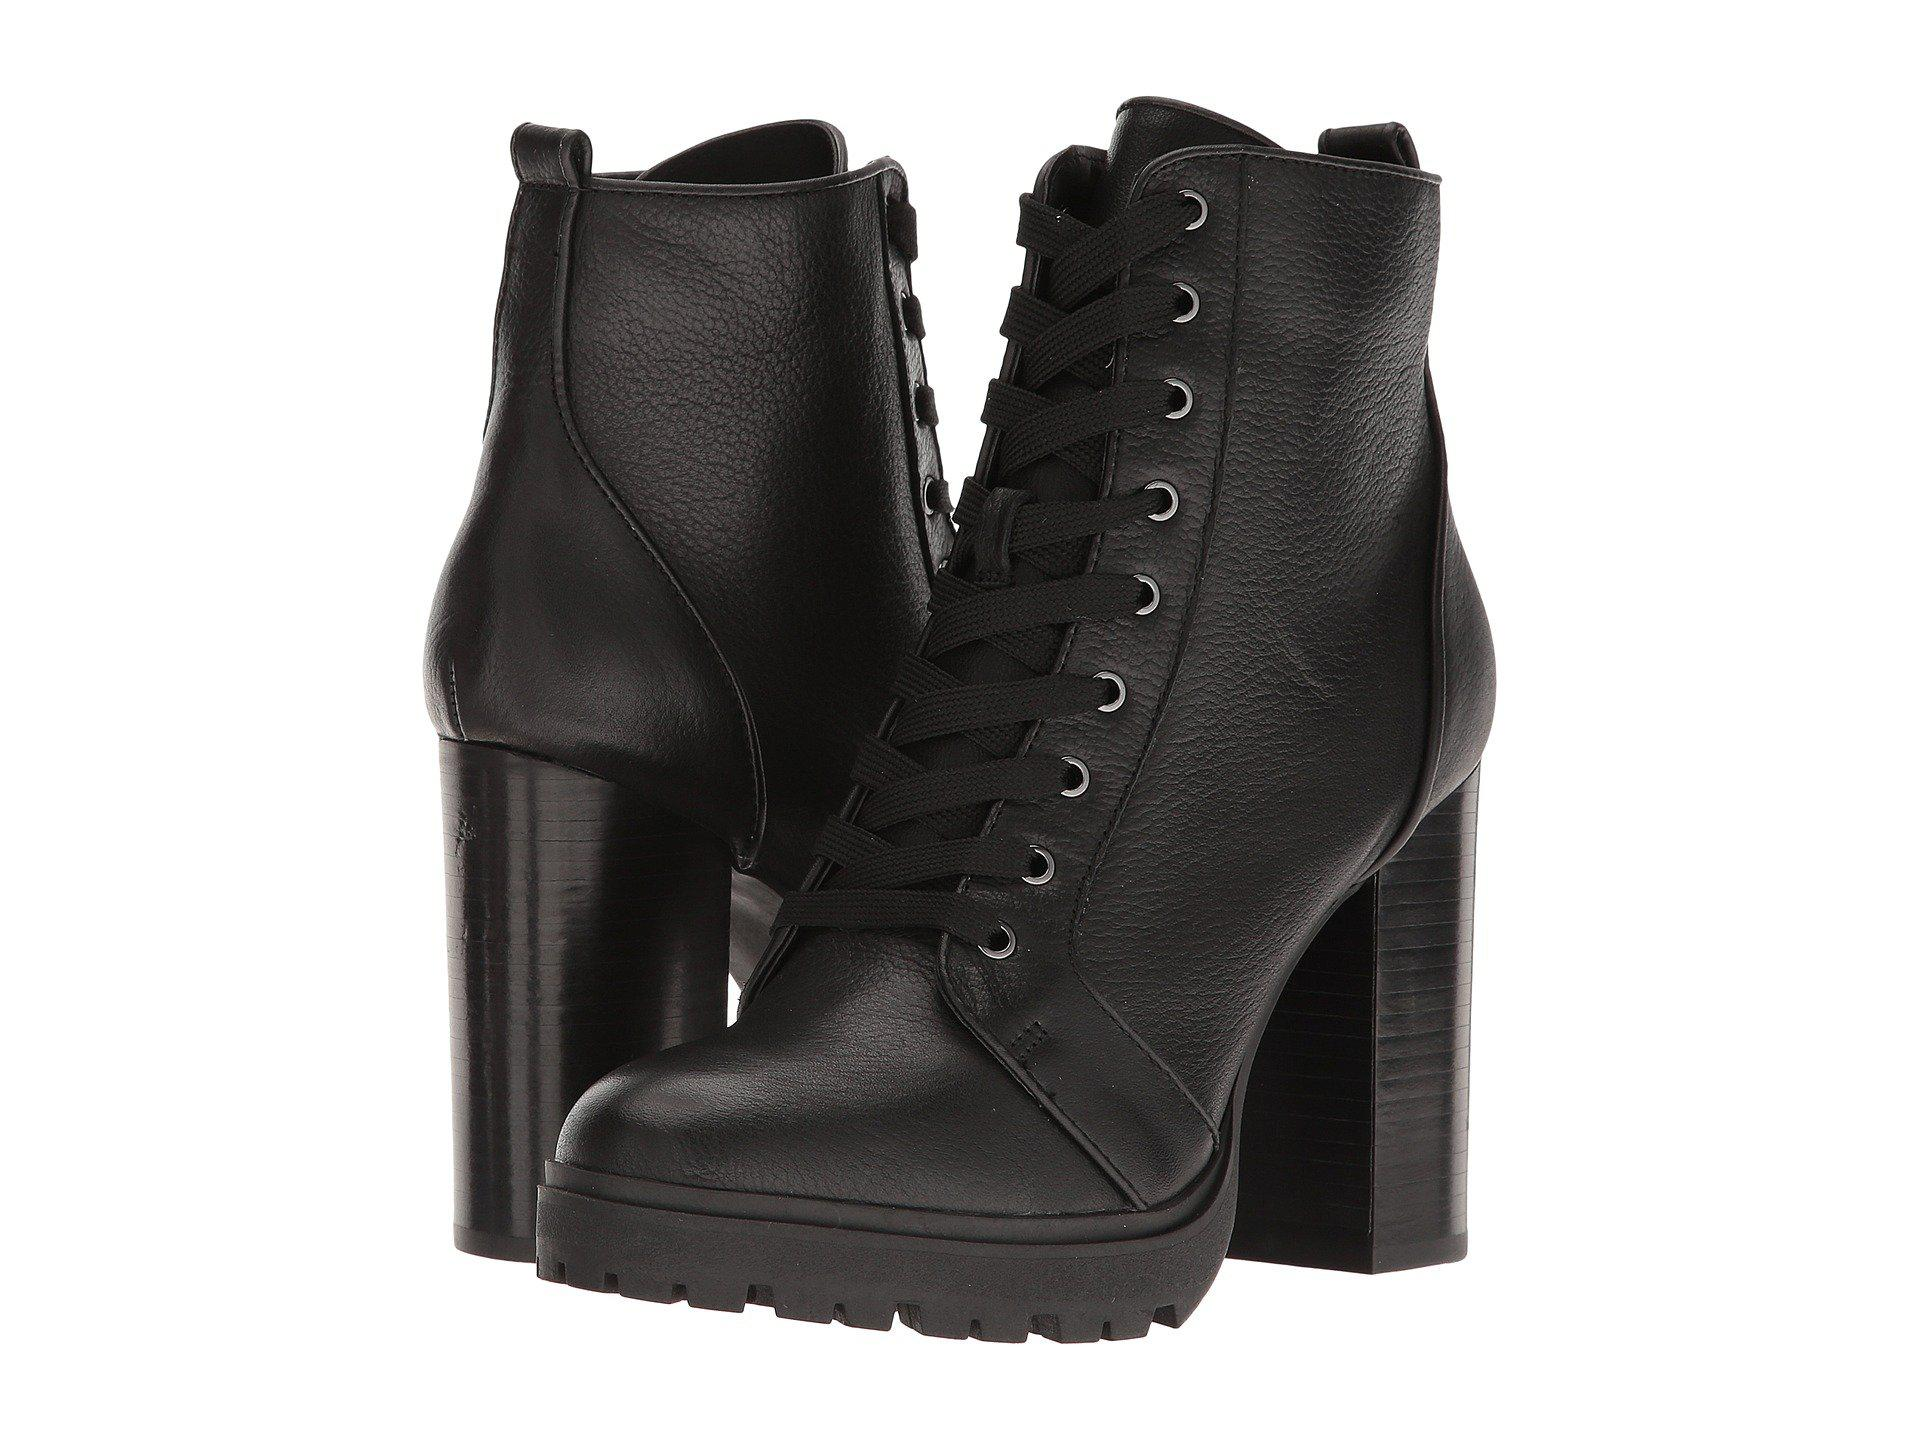 db72ffb39d1 Lyst - Steve Madden Laurie in Black